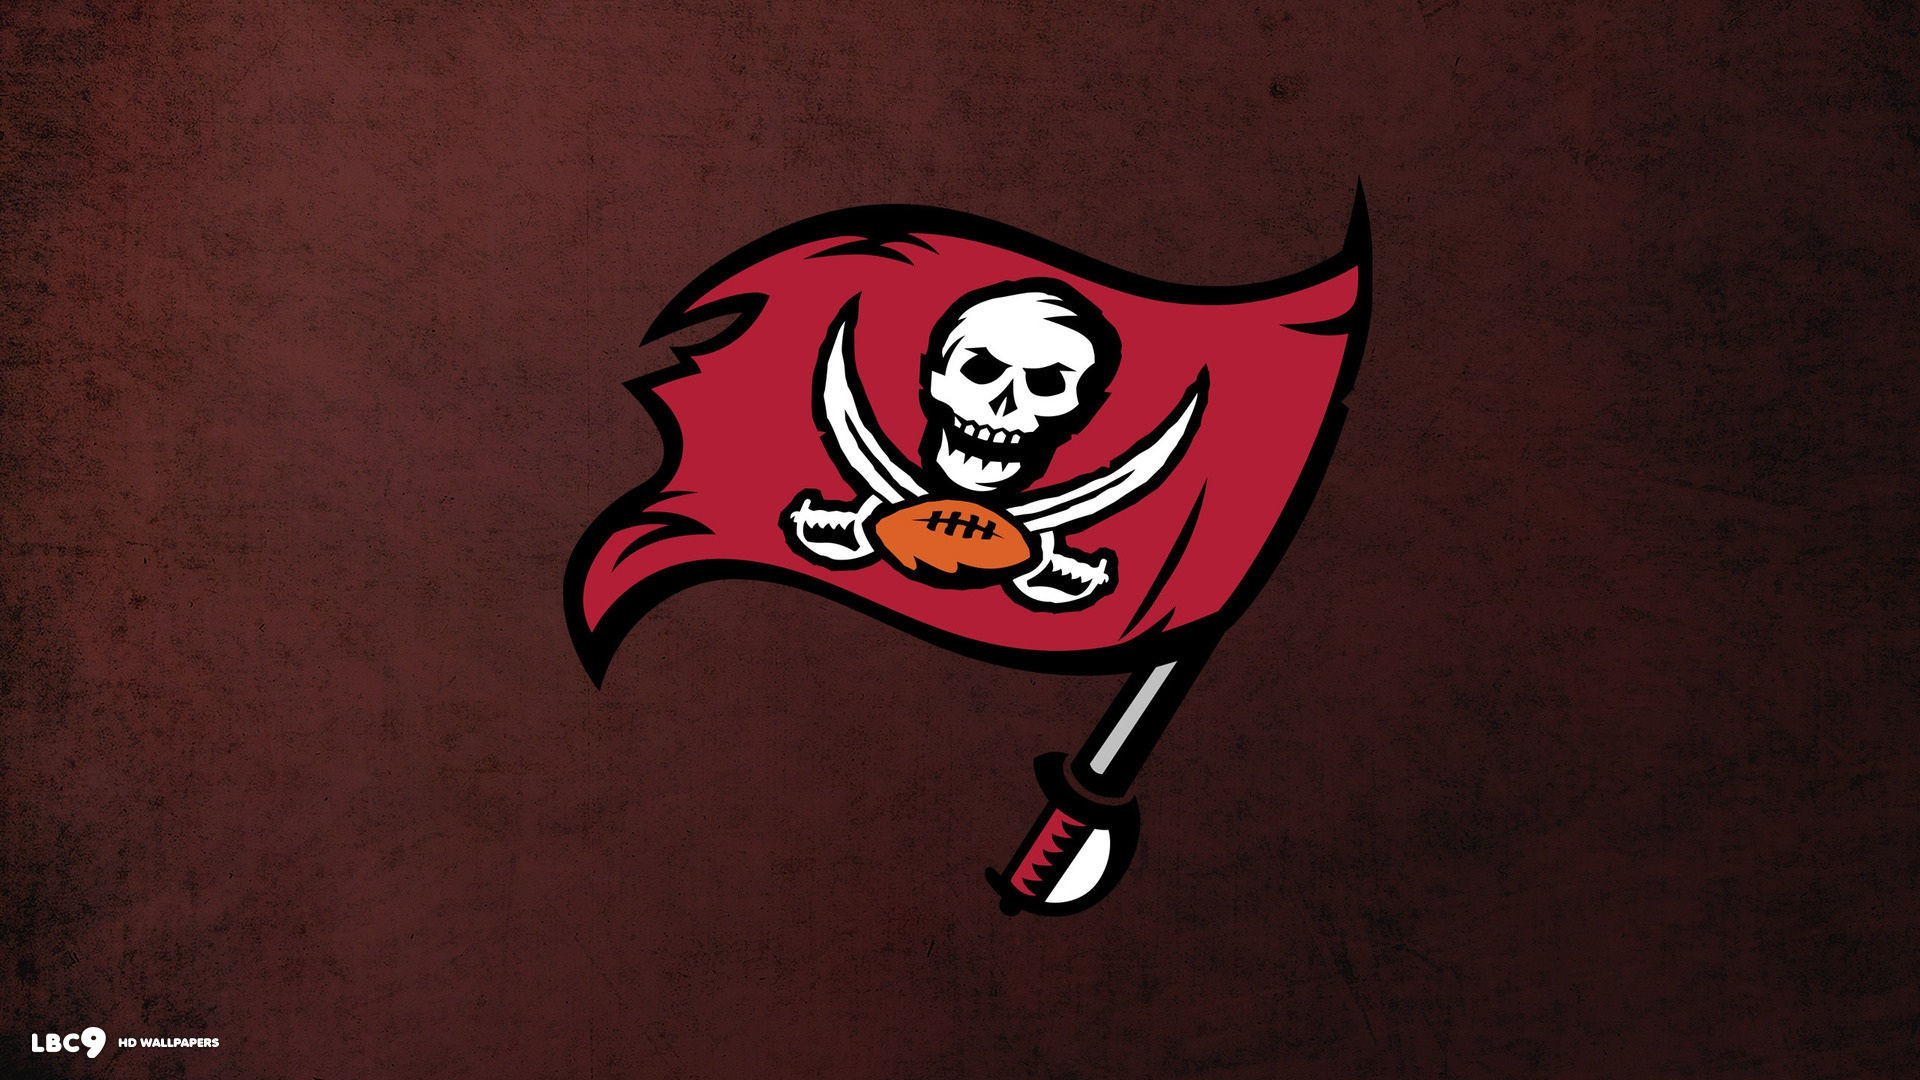 1920x1080 tampa bay buccaneers logo wallpaper